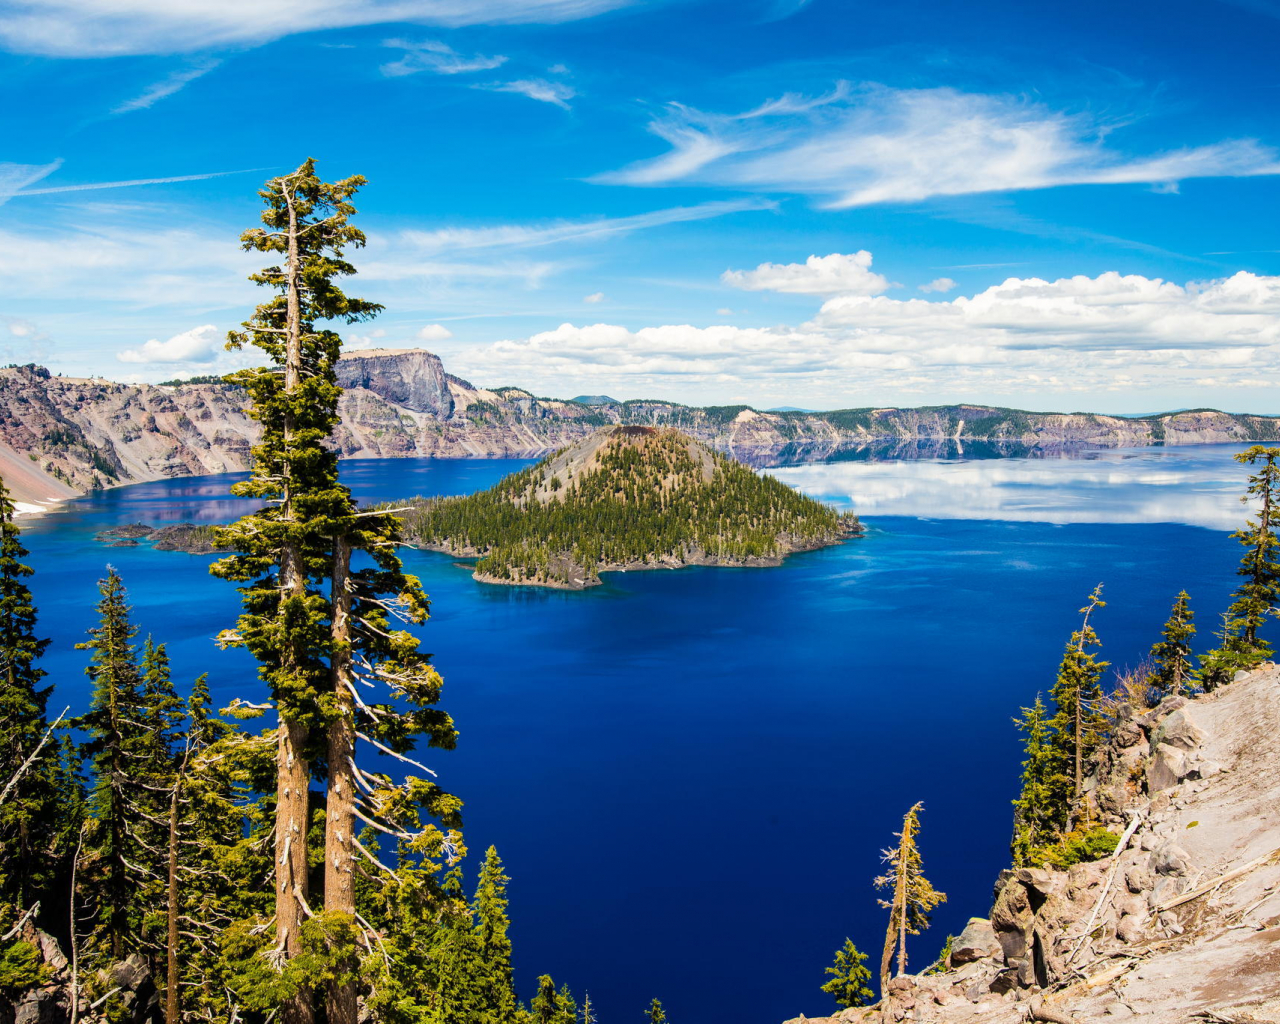 2048x1367px crater lake wallpaper - wallpapersafari